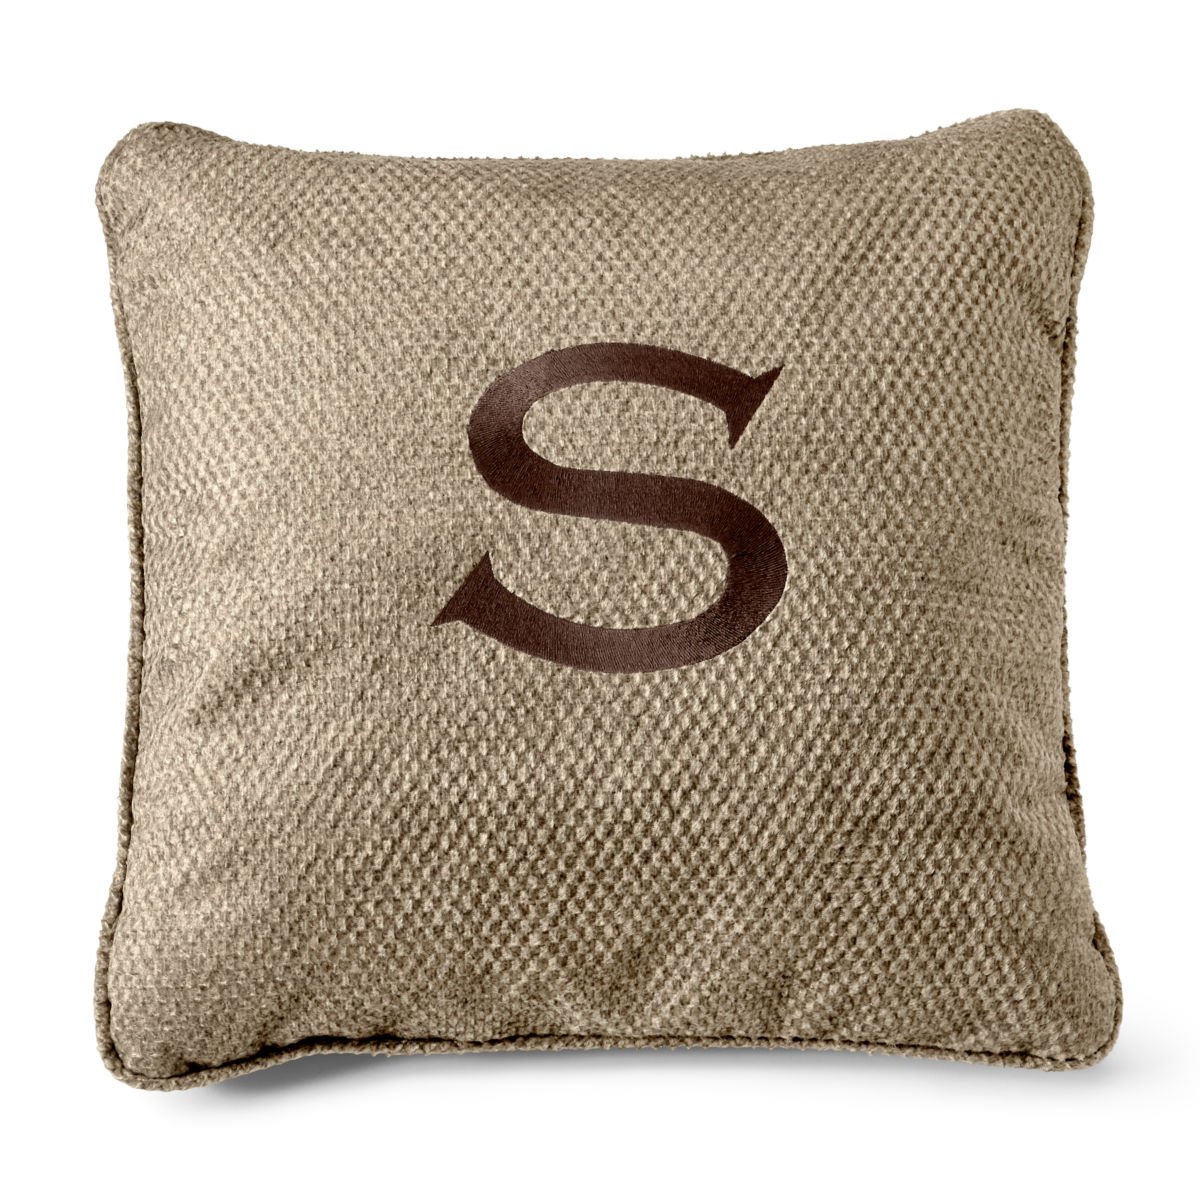 Personalized Throw Pillow - image number 0